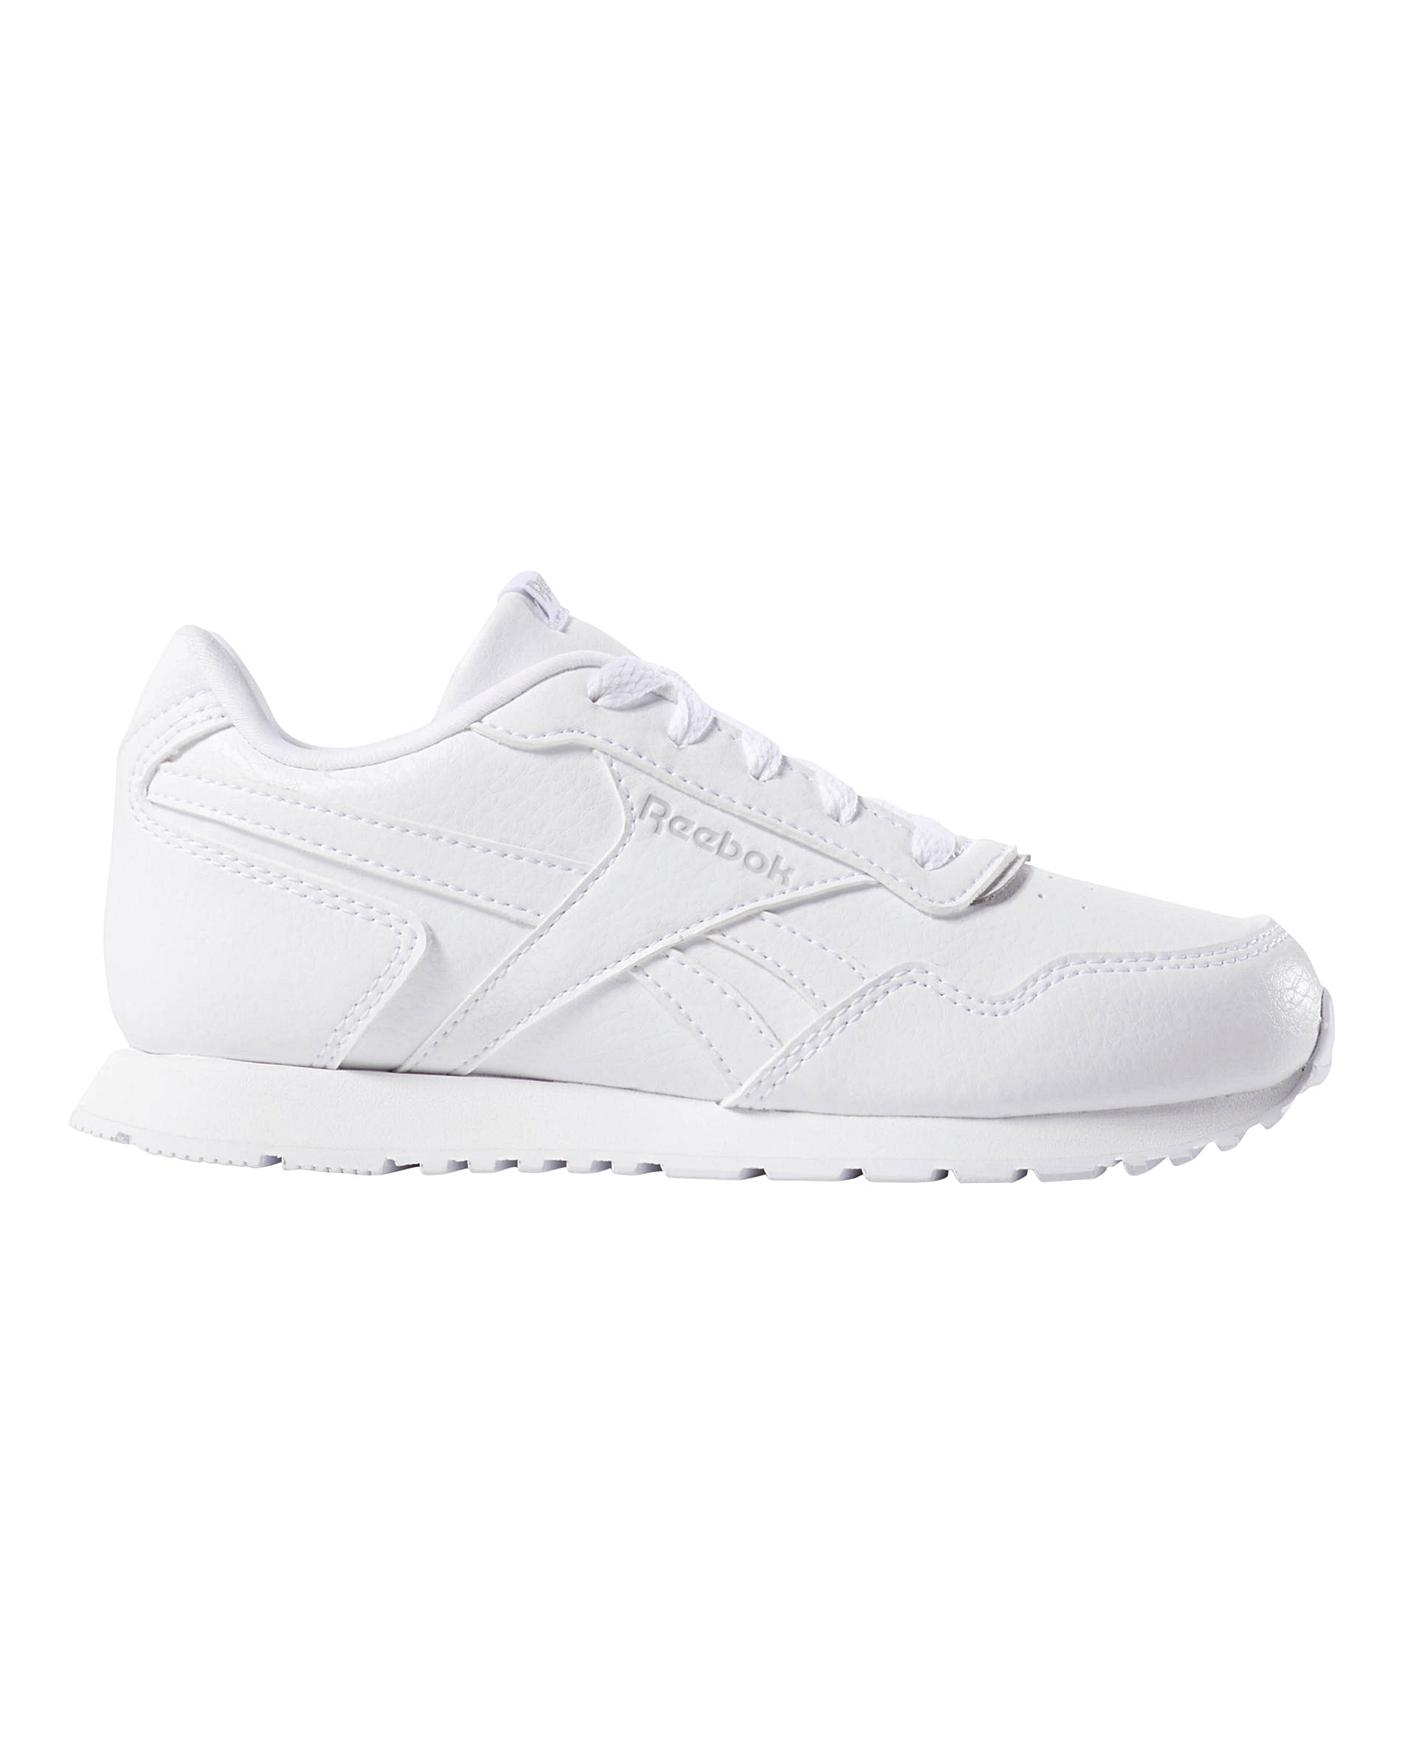 Reebok Boys Royal Glide Trainers Junior Classic Shoes Sneakers Kids